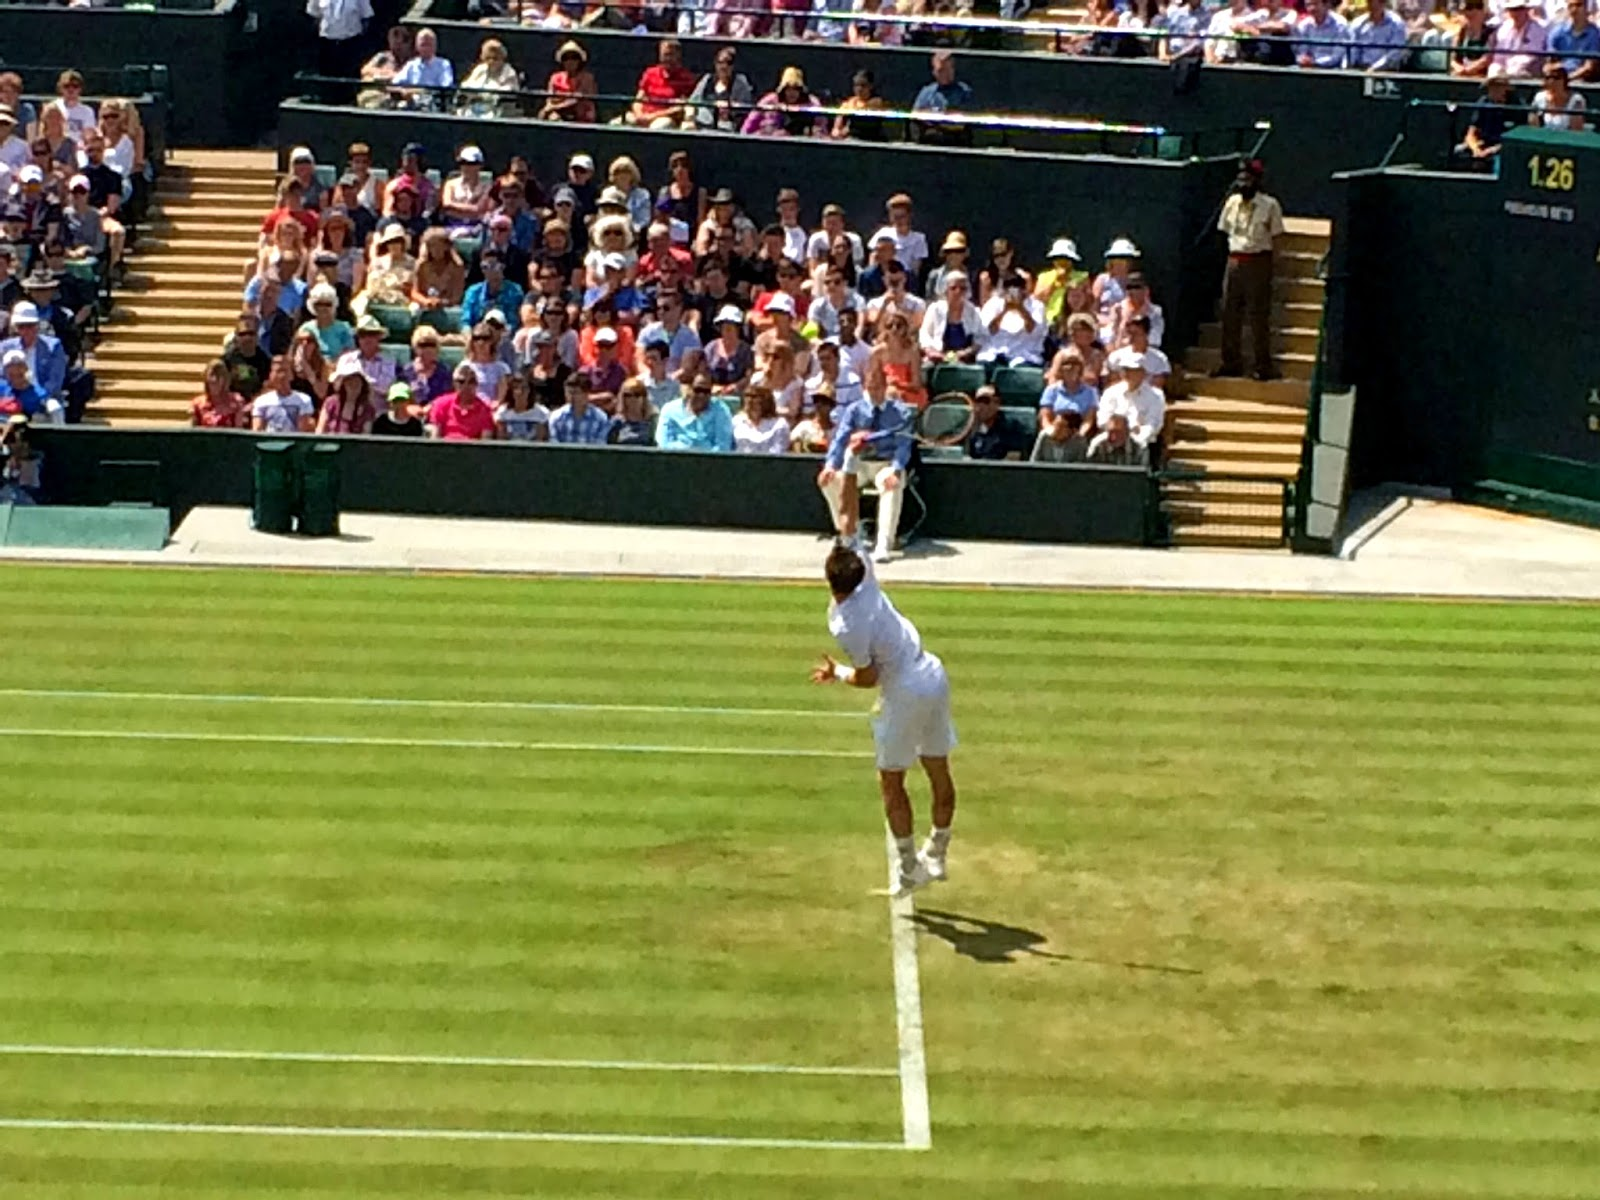 Andy Murray serving on Court 1 - Wimbledon 2014